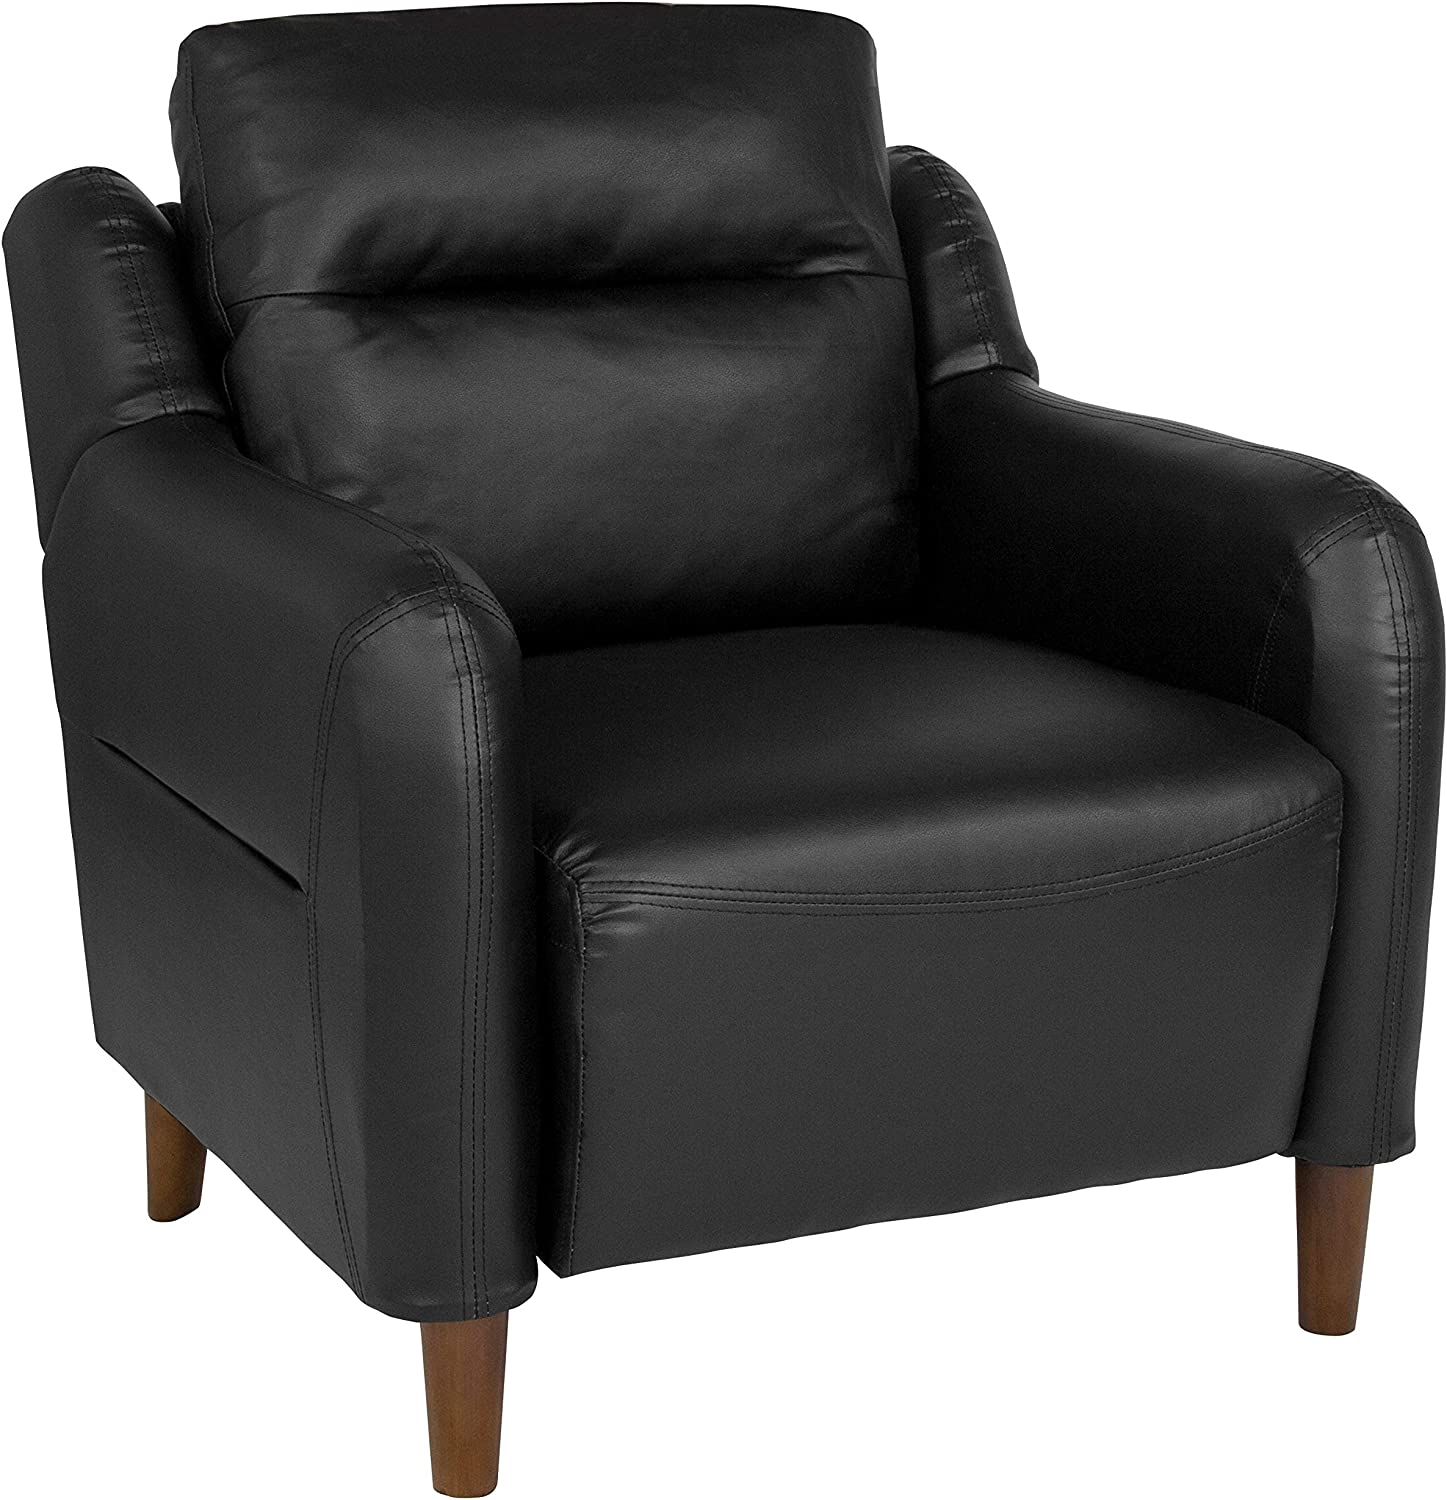 Flash Furniture Newton Hill Upholstered Bustle Back Arm Chair in Black LeatherSoft